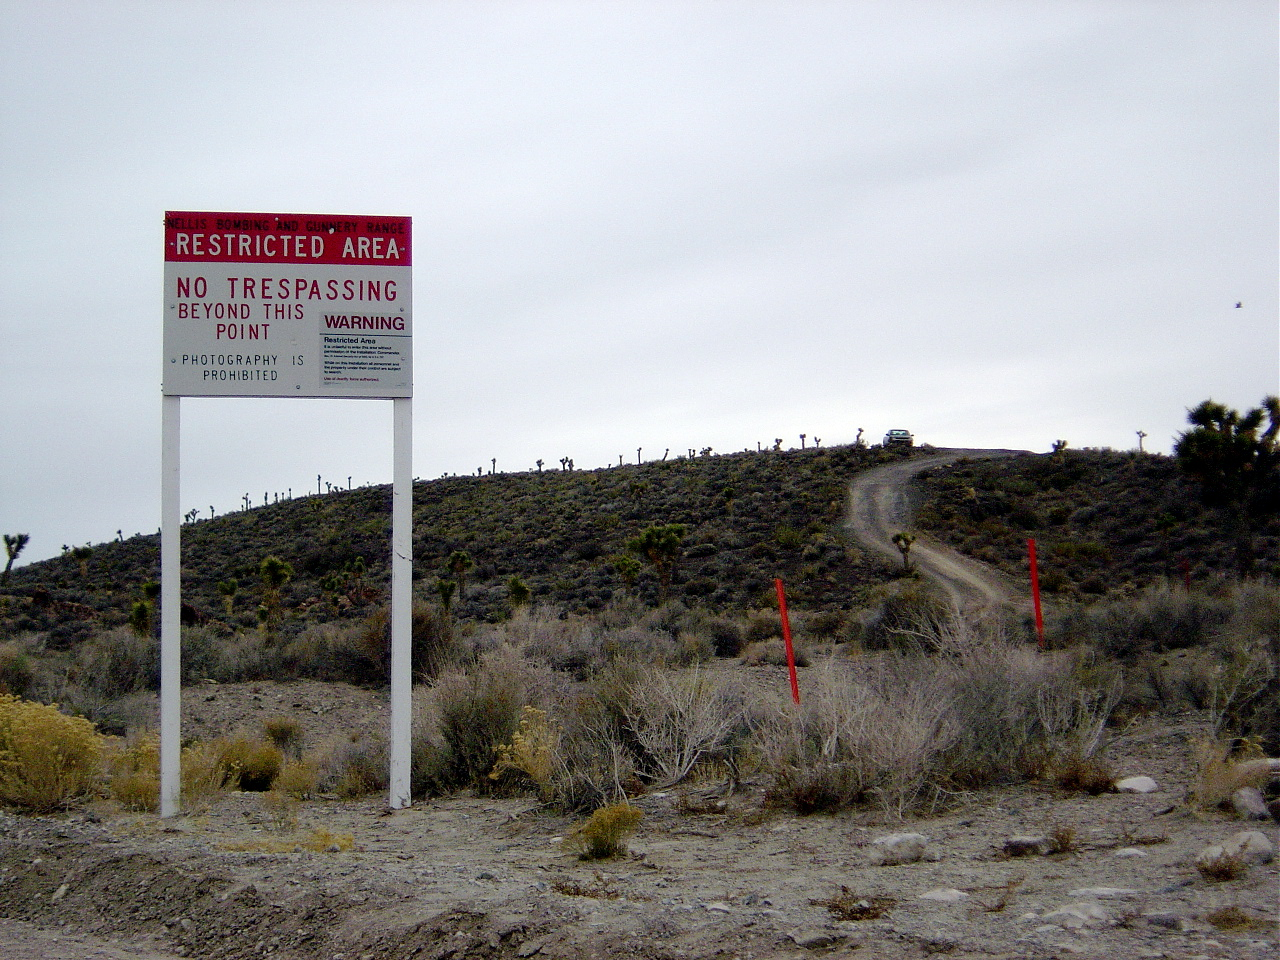 http://upload.wikimedia.org/wikipedia/commons/9/98/Wfm_x51_area51_warningsign.jpg